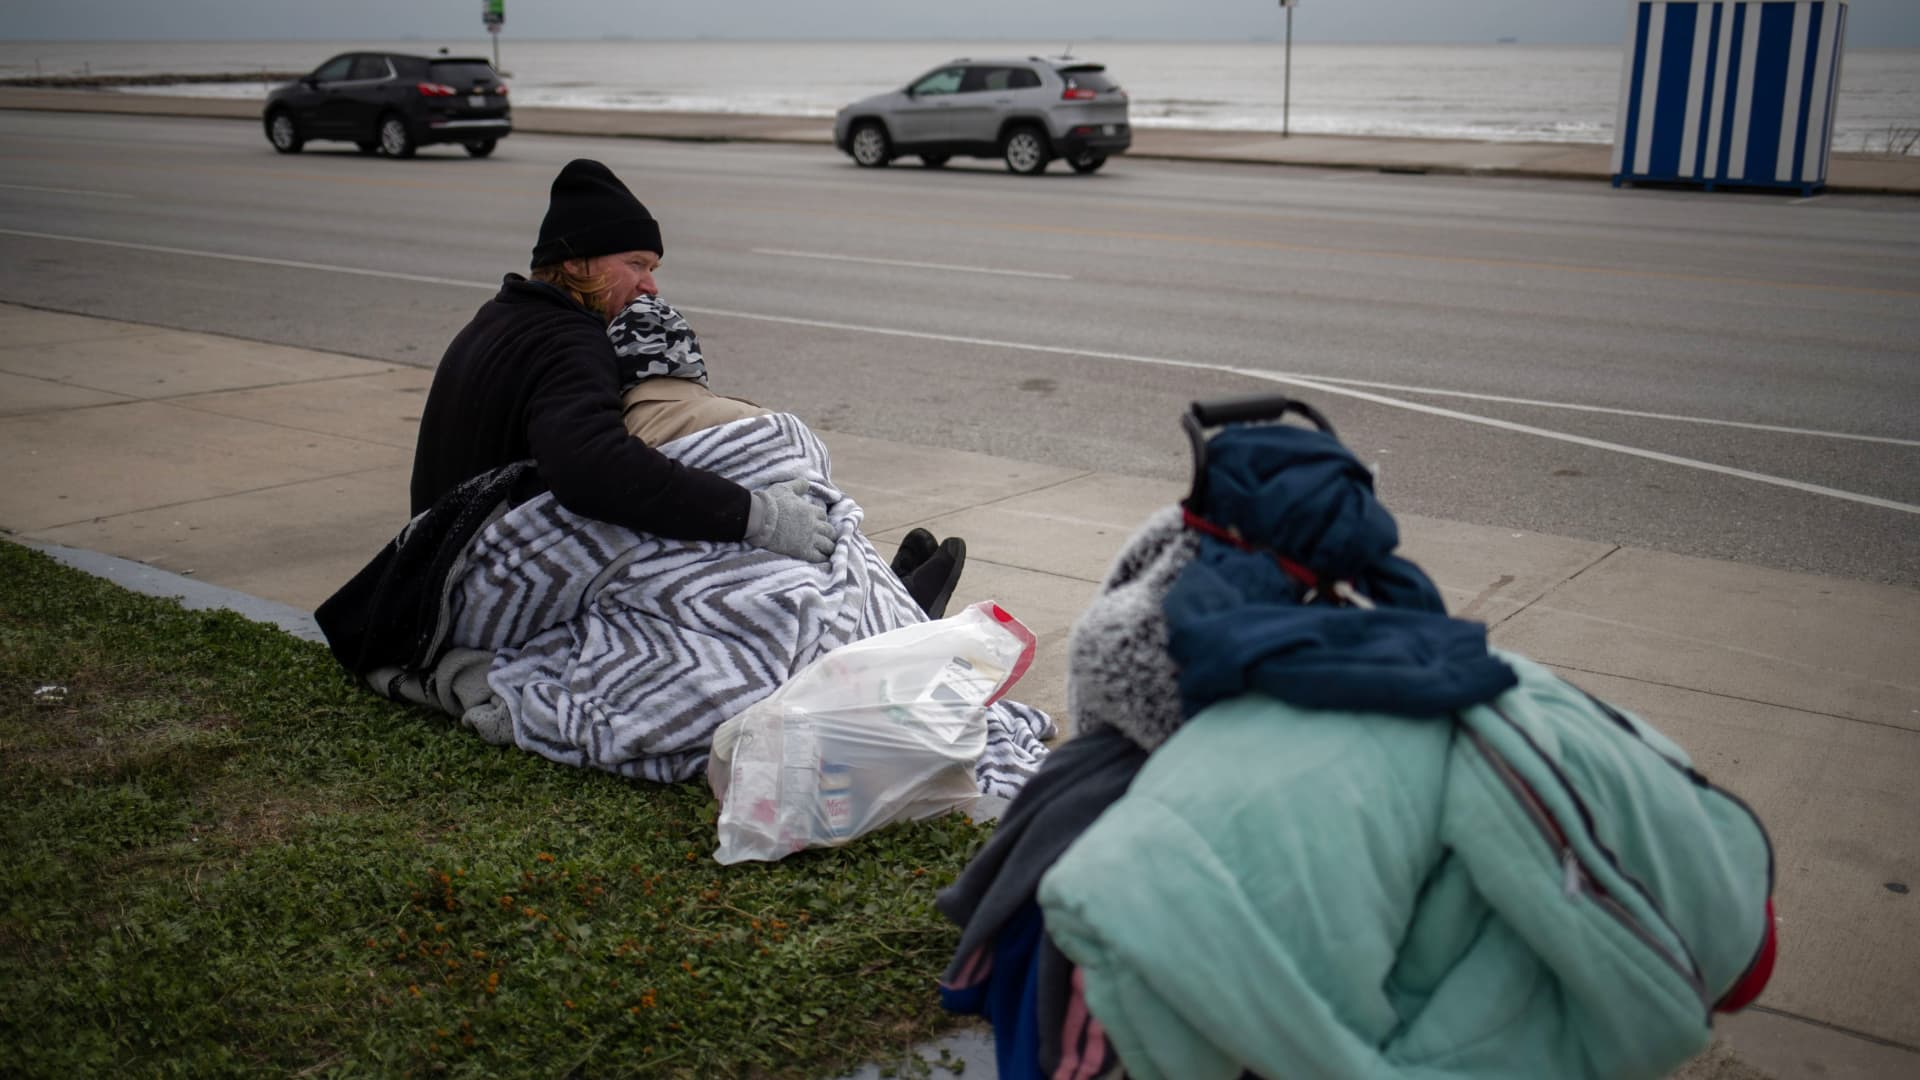 Couple Renne Alva, 37, and Travis Wasicek, 43, sit amongst their belongings along Seawall Boulevard as they embrace to keep each other warm after record-breaking winter temperatures in Galveston, Texas, February 18, 2021. The couple said they became homeless last year after losing their jobs due to the economic fallout from the coronavirus (COVID-19) global pandemic.